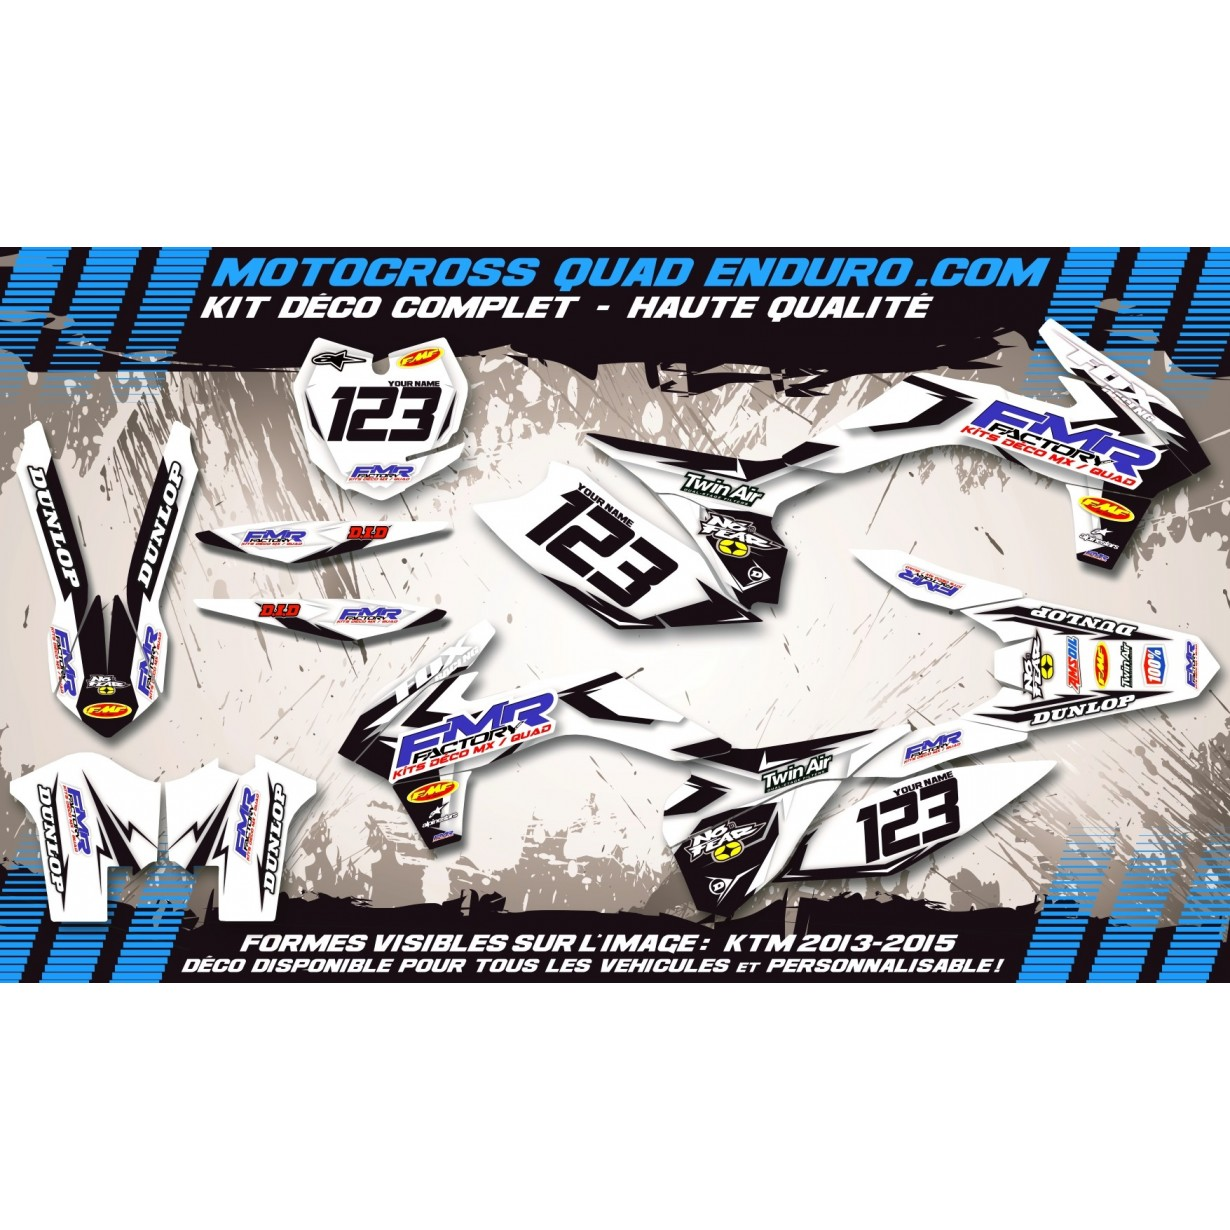 KIT DÉCO Perso 450 CRF 05-08 Fmr factory WT Edition MA13WT